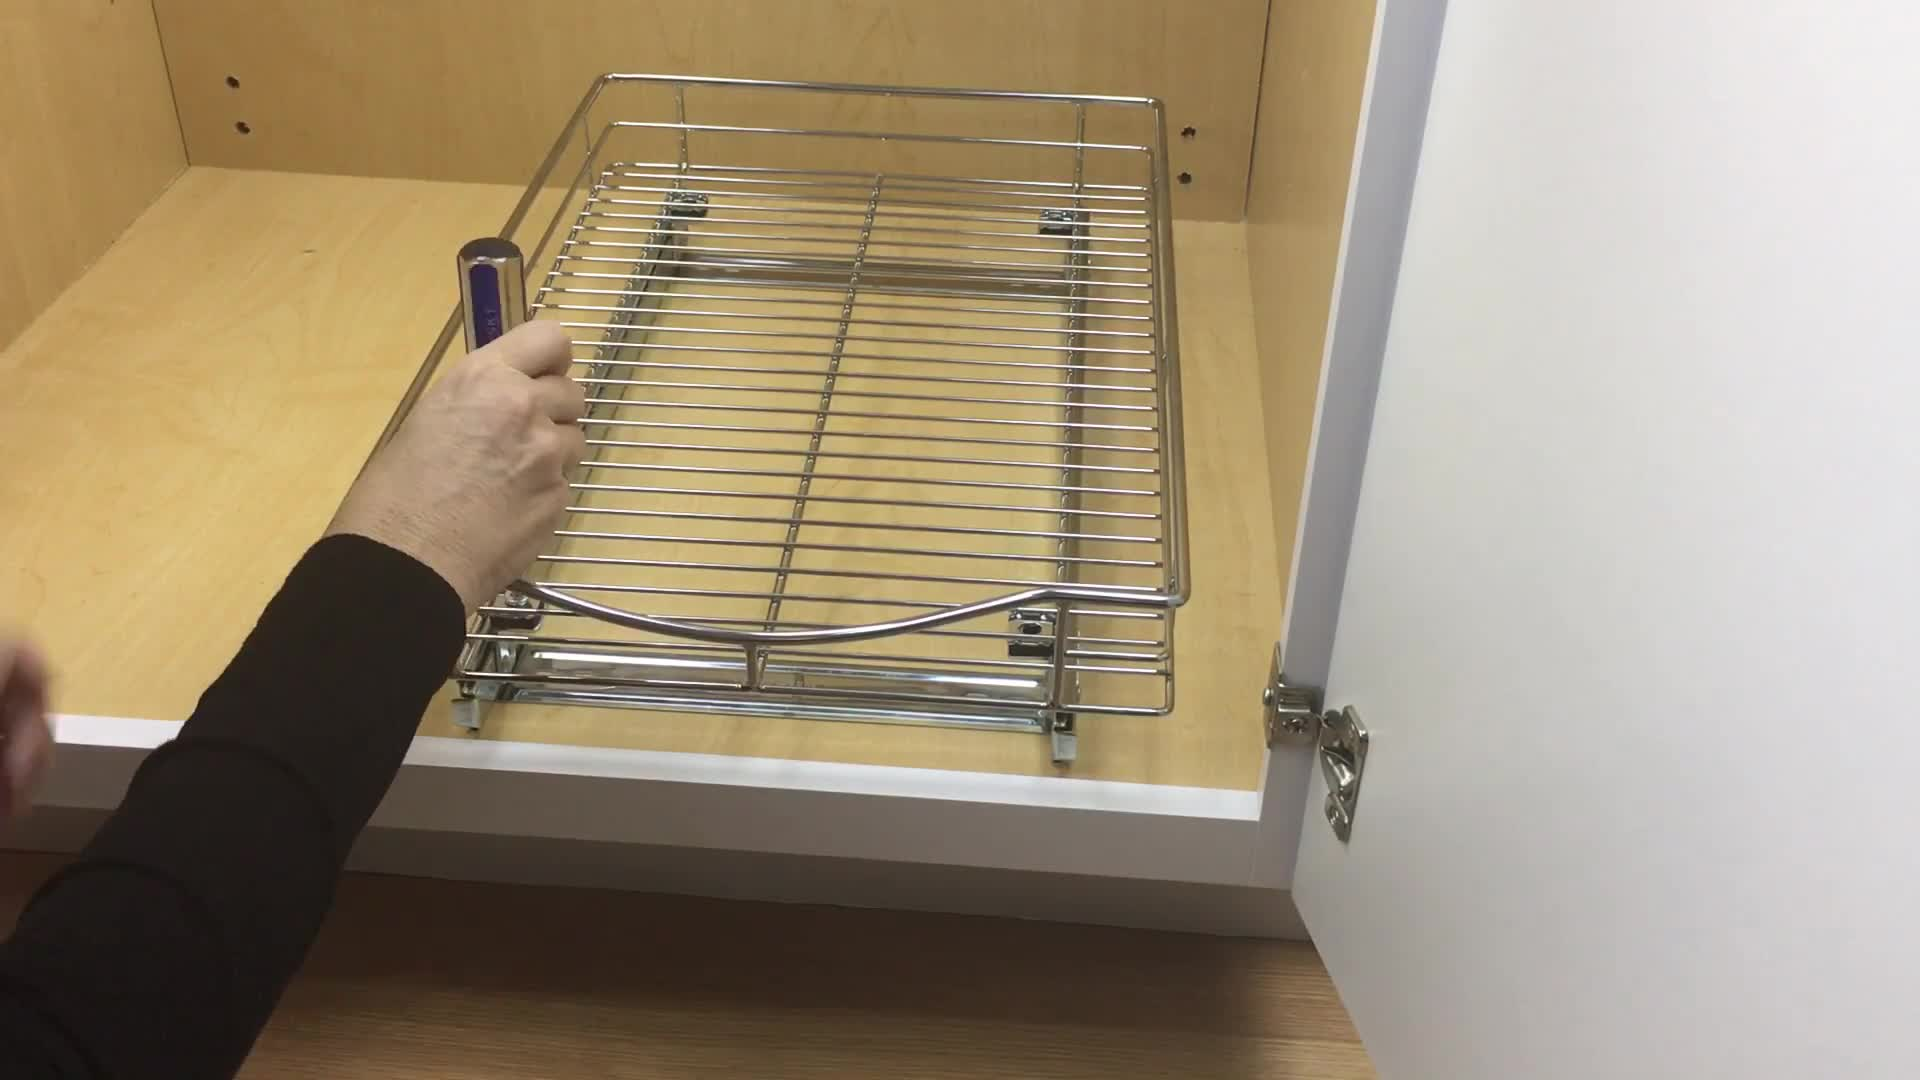 Watch The Video For Lynk Professional Wide Roll Out 11 Inch Under Cabinet  Sliding Shelf